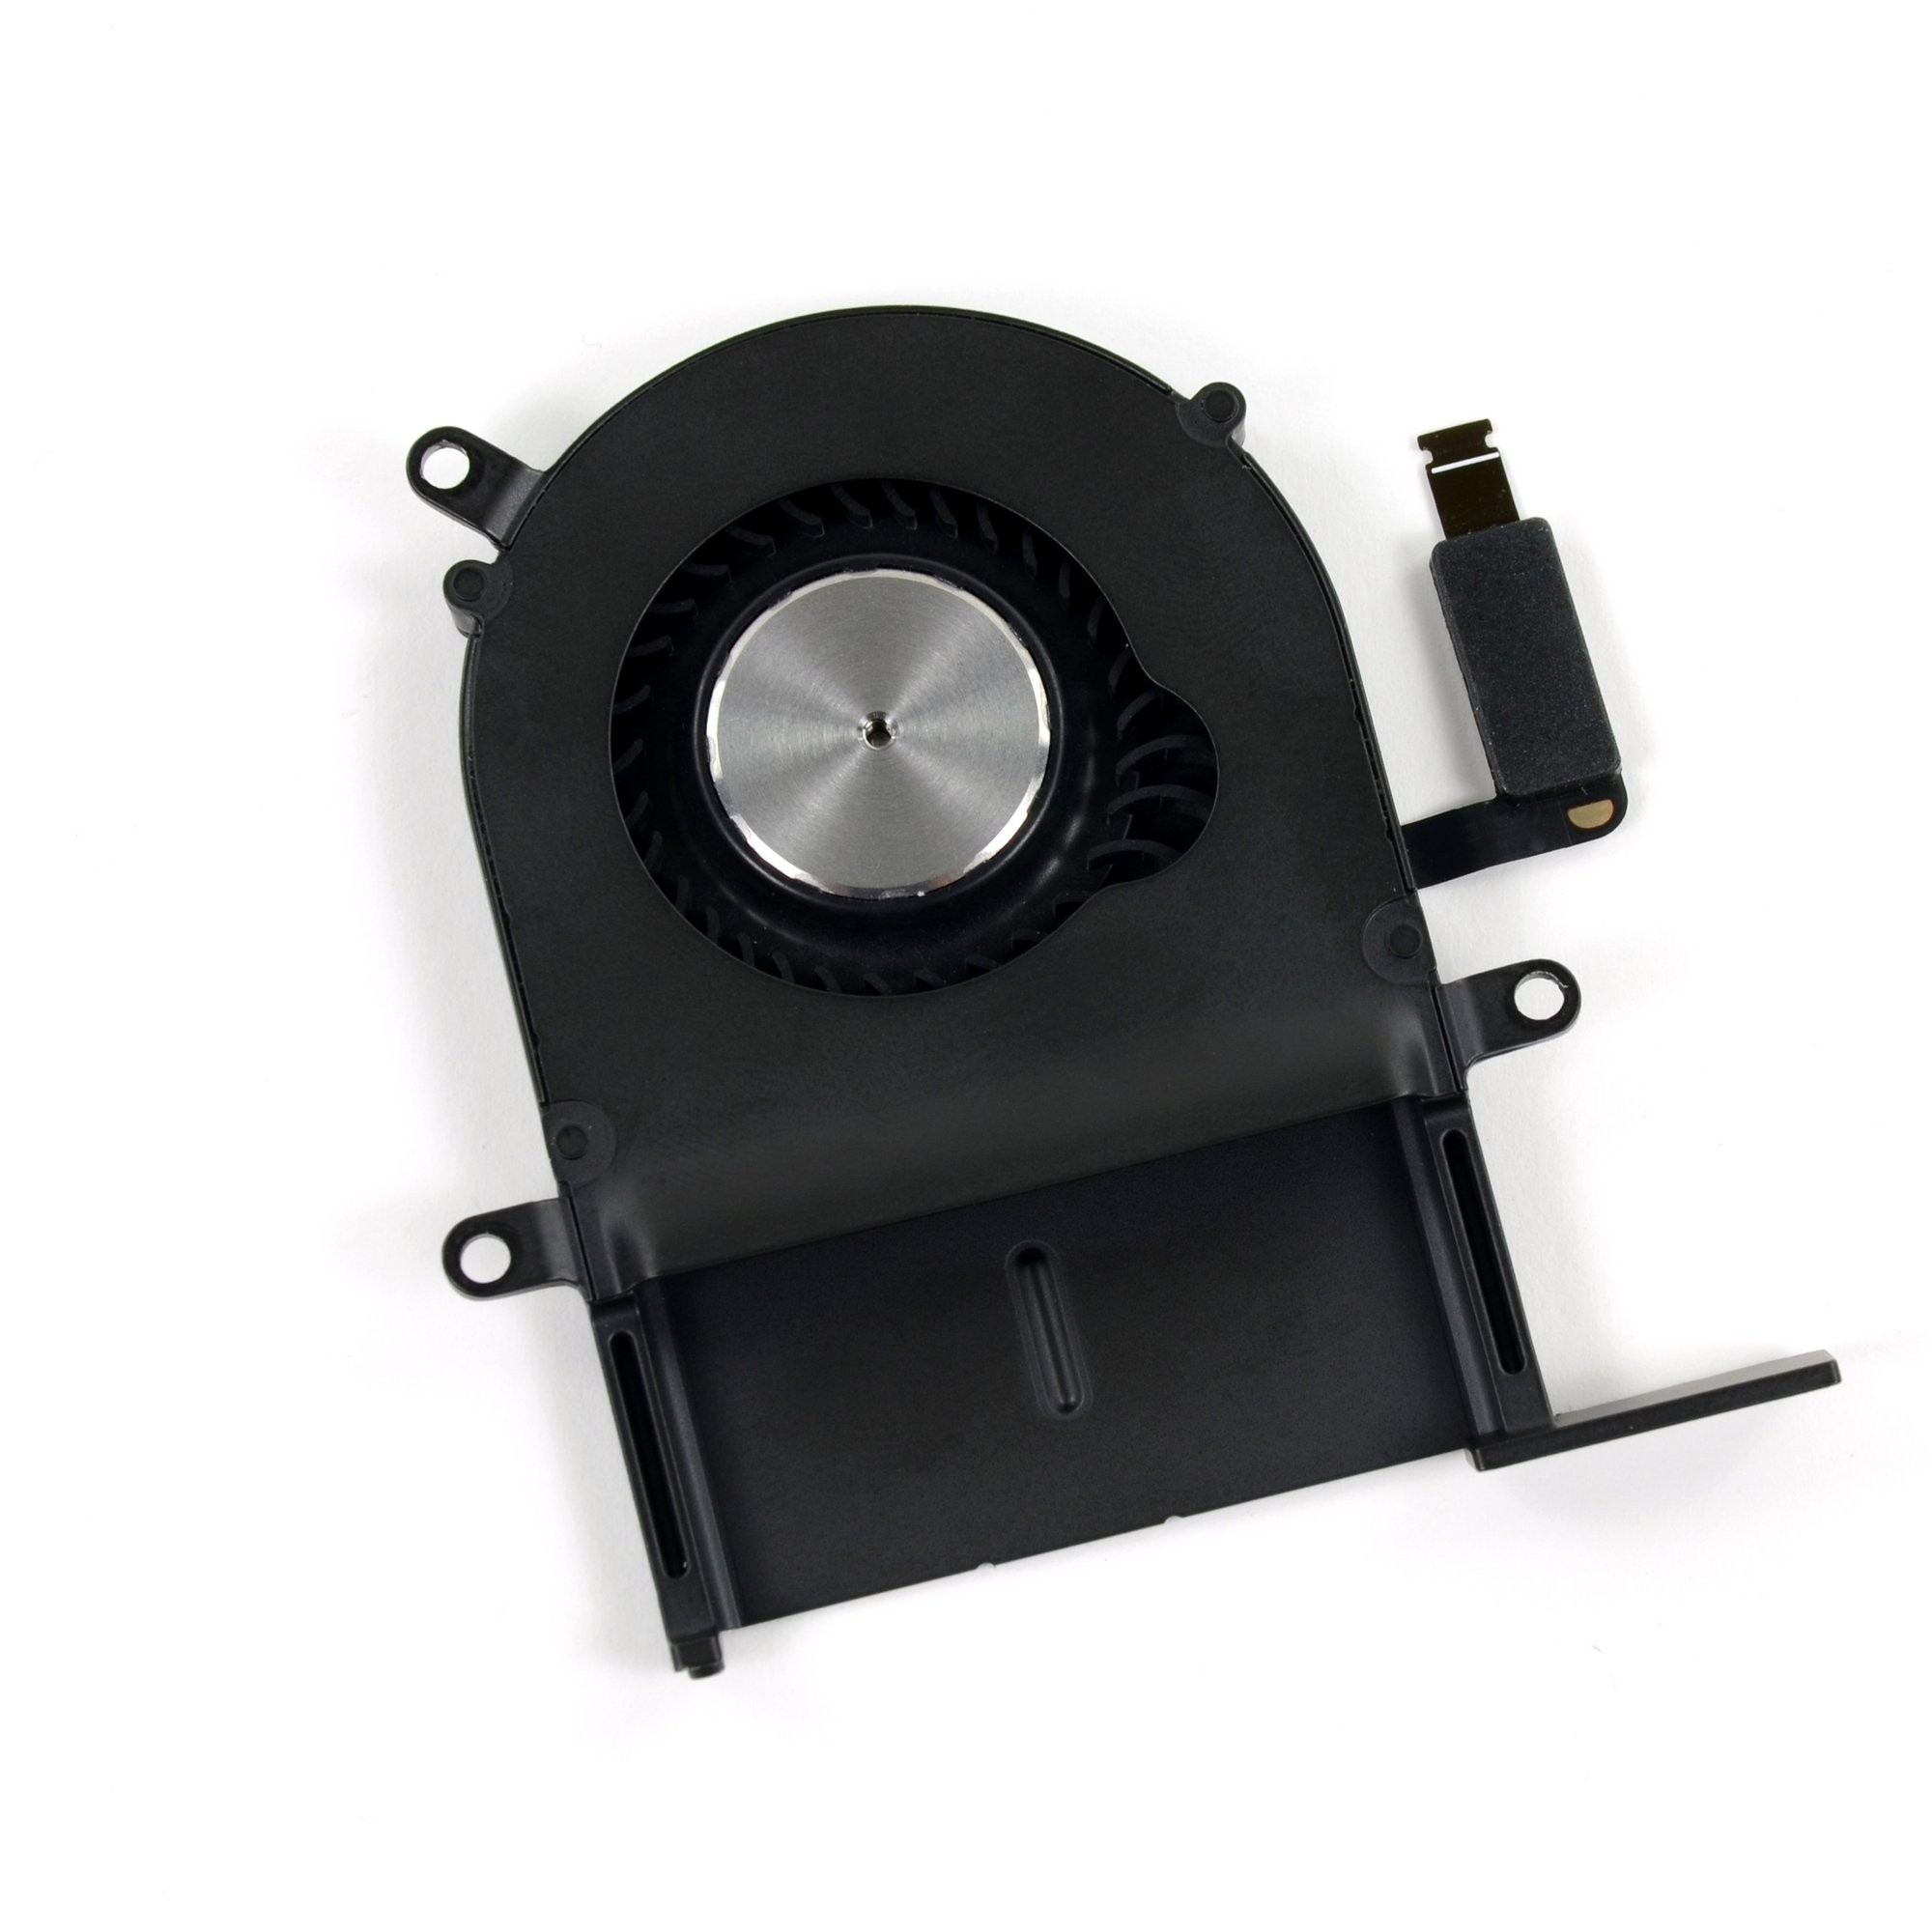 """MacBook Pro Retina 13"""" Replacement Fans (Pair) - A1425 (Late 2012-Early 2013), A1425 (2012)"""